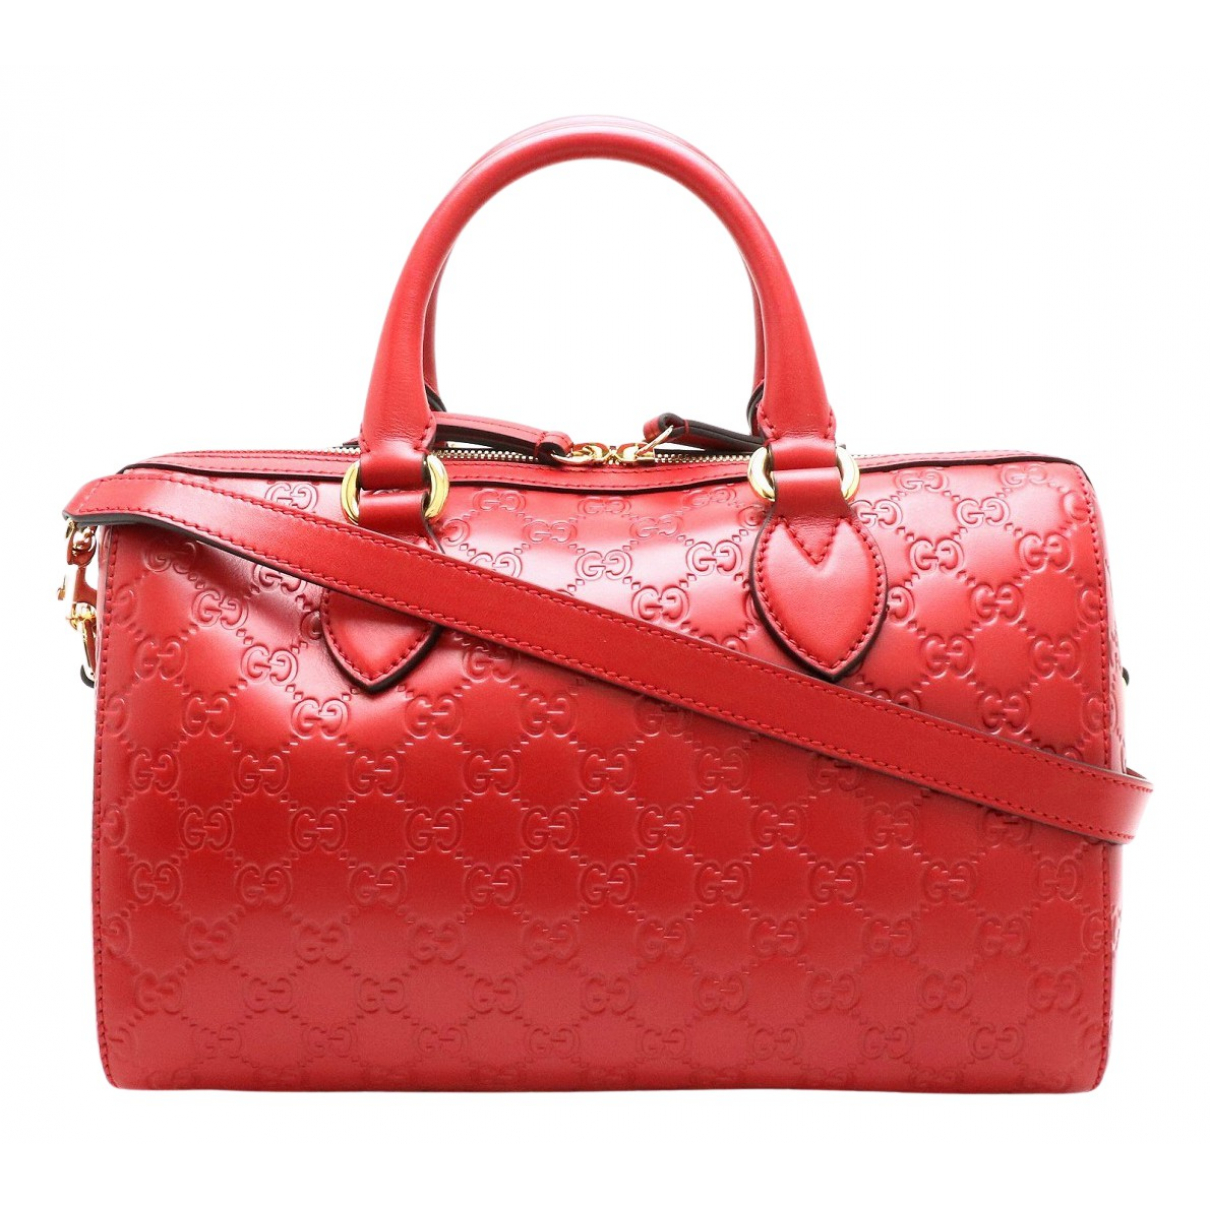 Gucci N Red Leather handbag for Women N